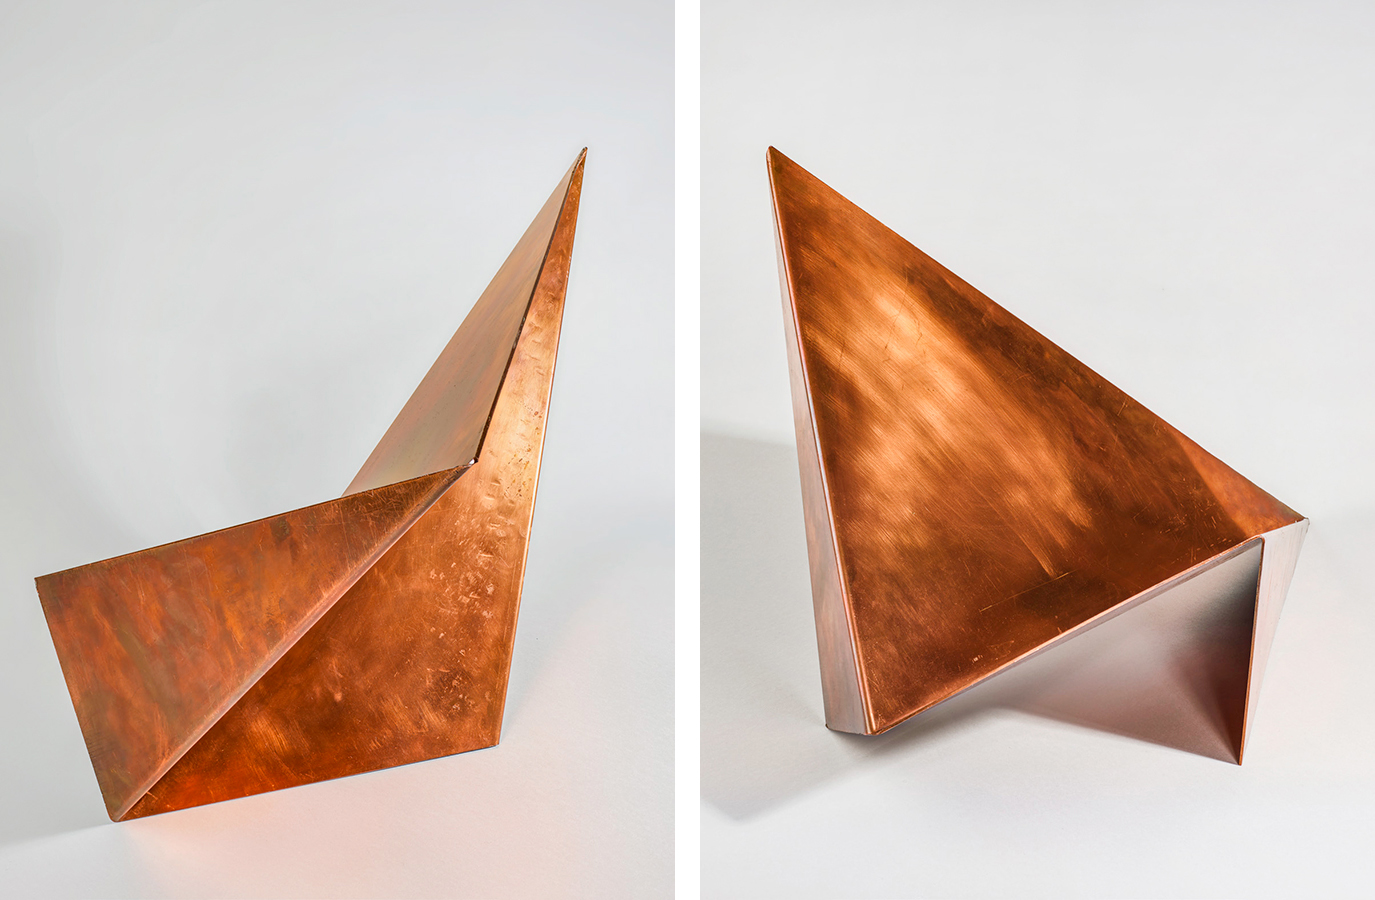 Hermann Glöckner, Spatial Refraction of a Rectangle (two views), 1945–46. Copper. Harvard Art Museums/Busch-Reisinger Museum, Promised gift of Kathrin Presser-Velder and Markus Michalke, Munich, in honor of Gisela Michalke. Artwork: © 2017 Artists Rights Society (ARS), New York/VG Bild-Kunst, Bonn. Photo: © Johannes von Mallinckrodt.